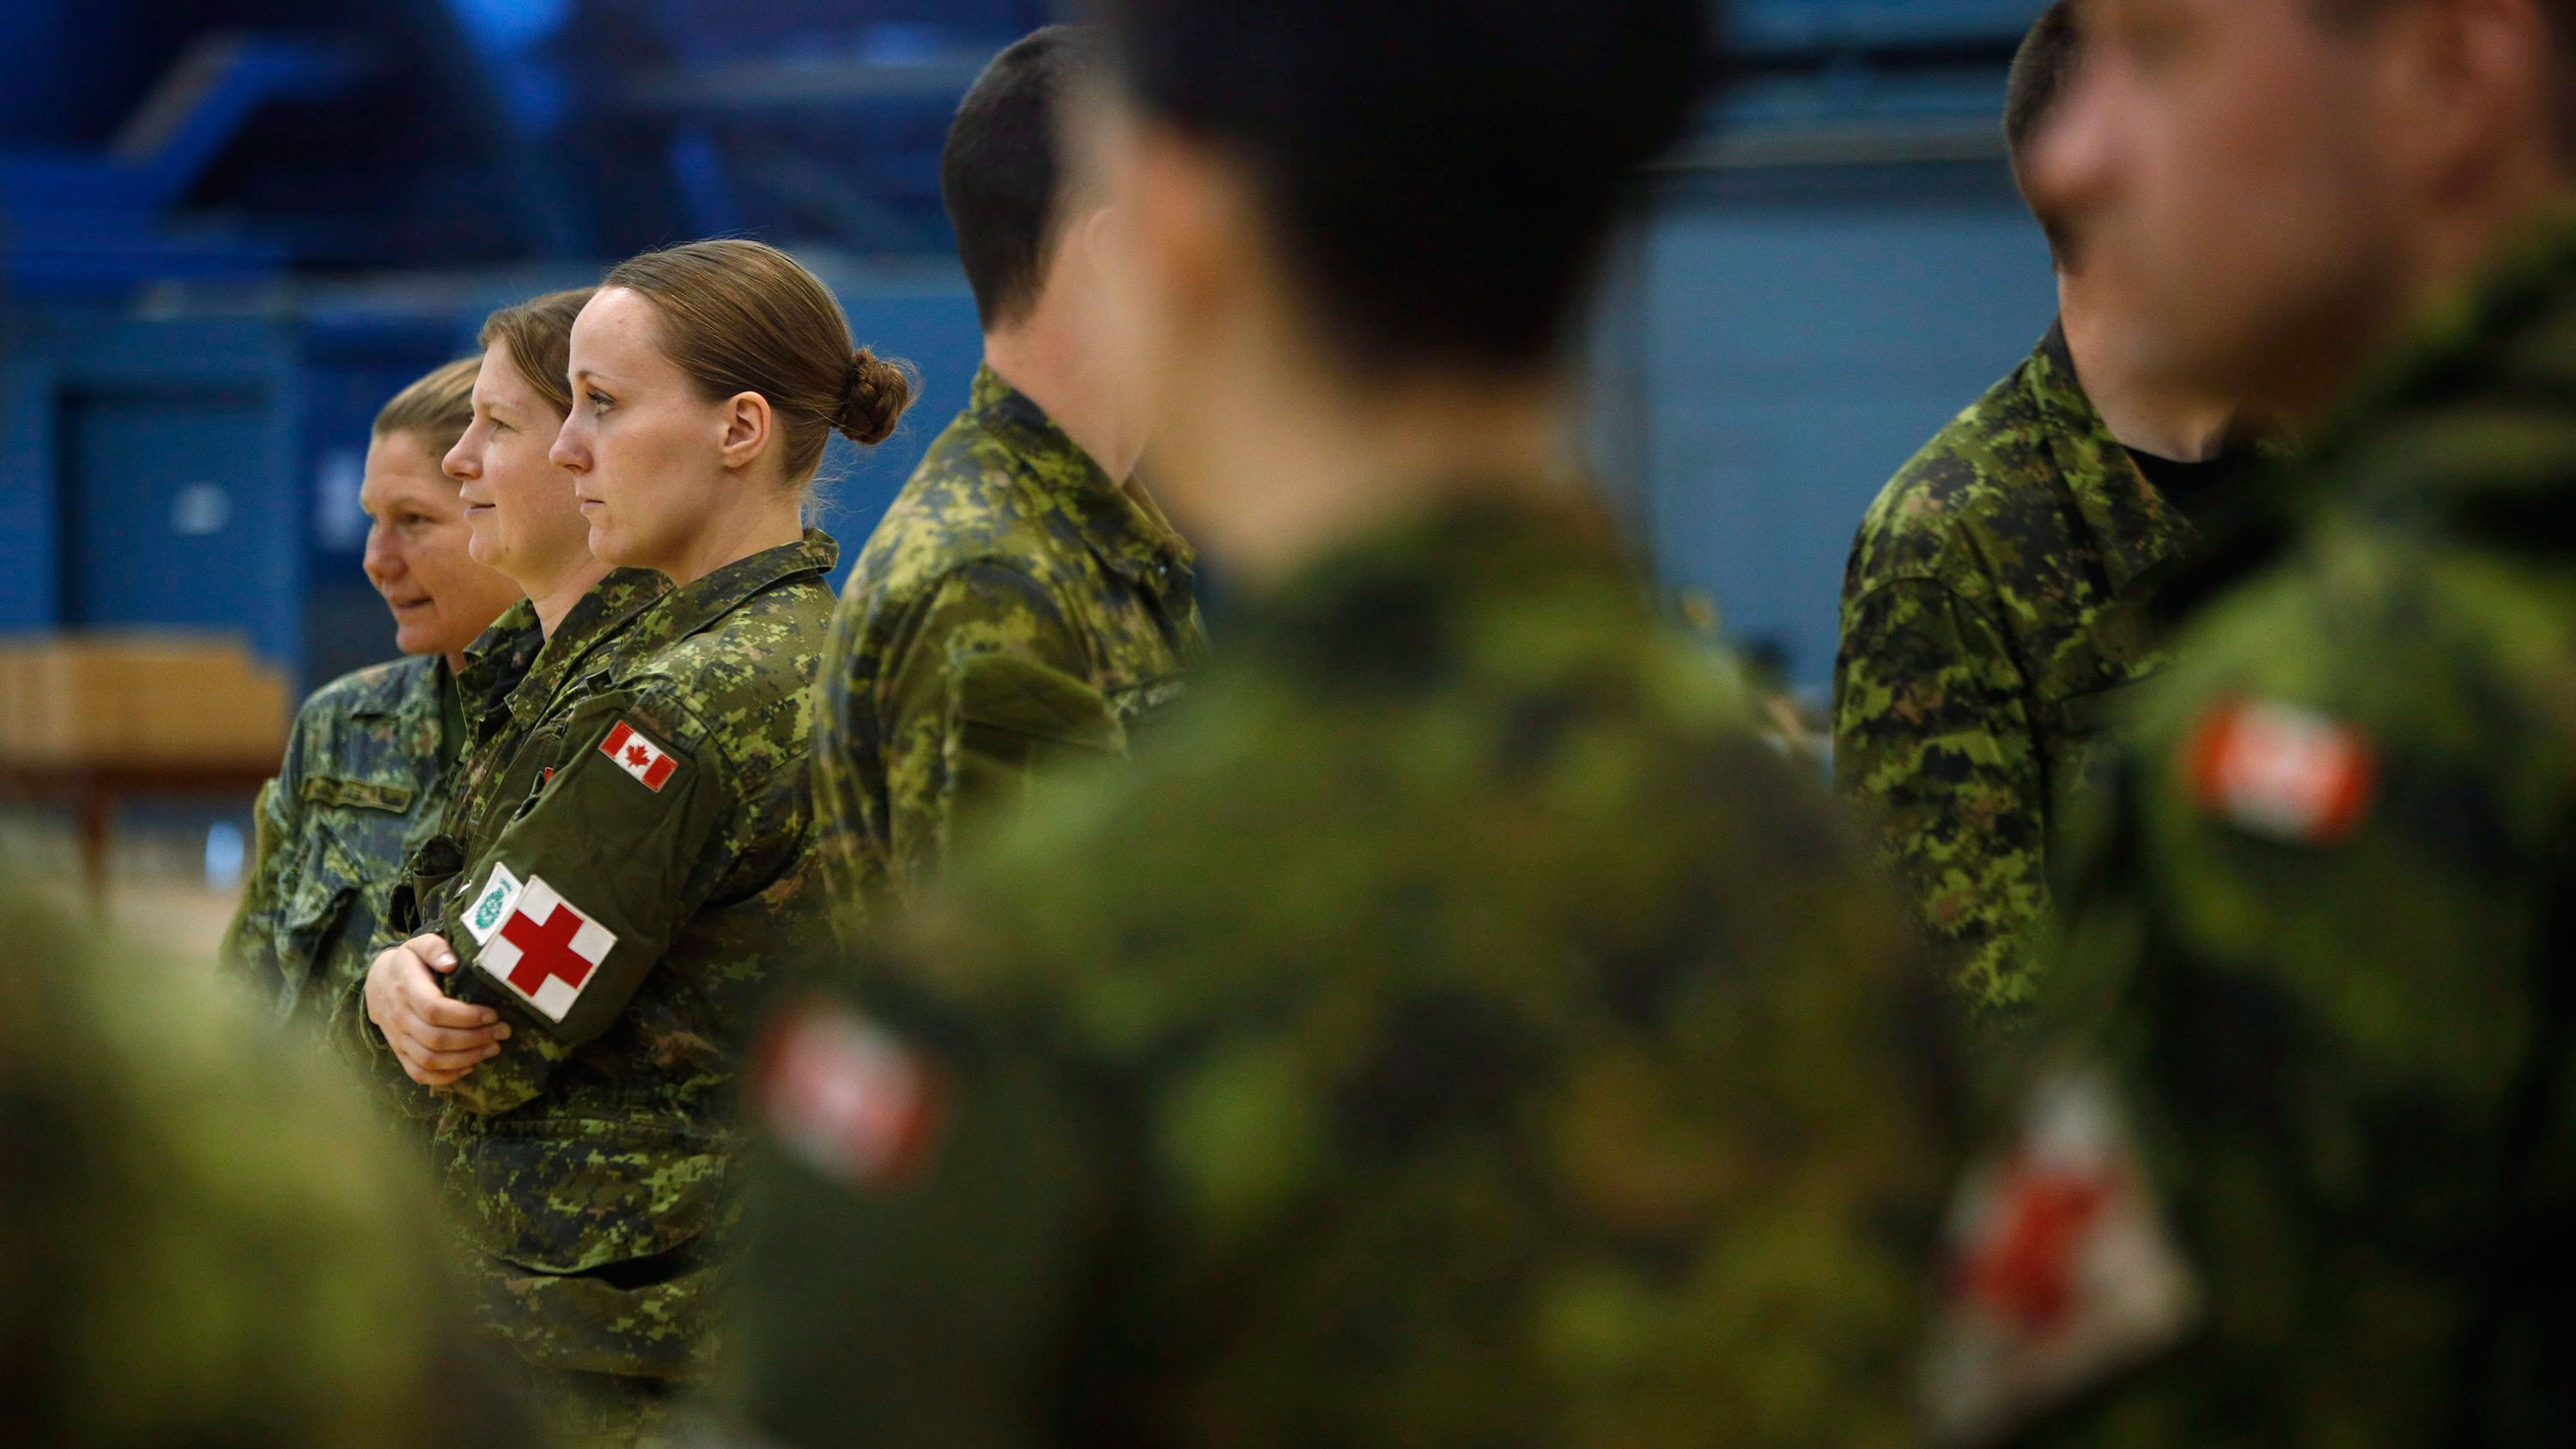 Canada military ill-prepared to resume mantle as world's peacekeeper